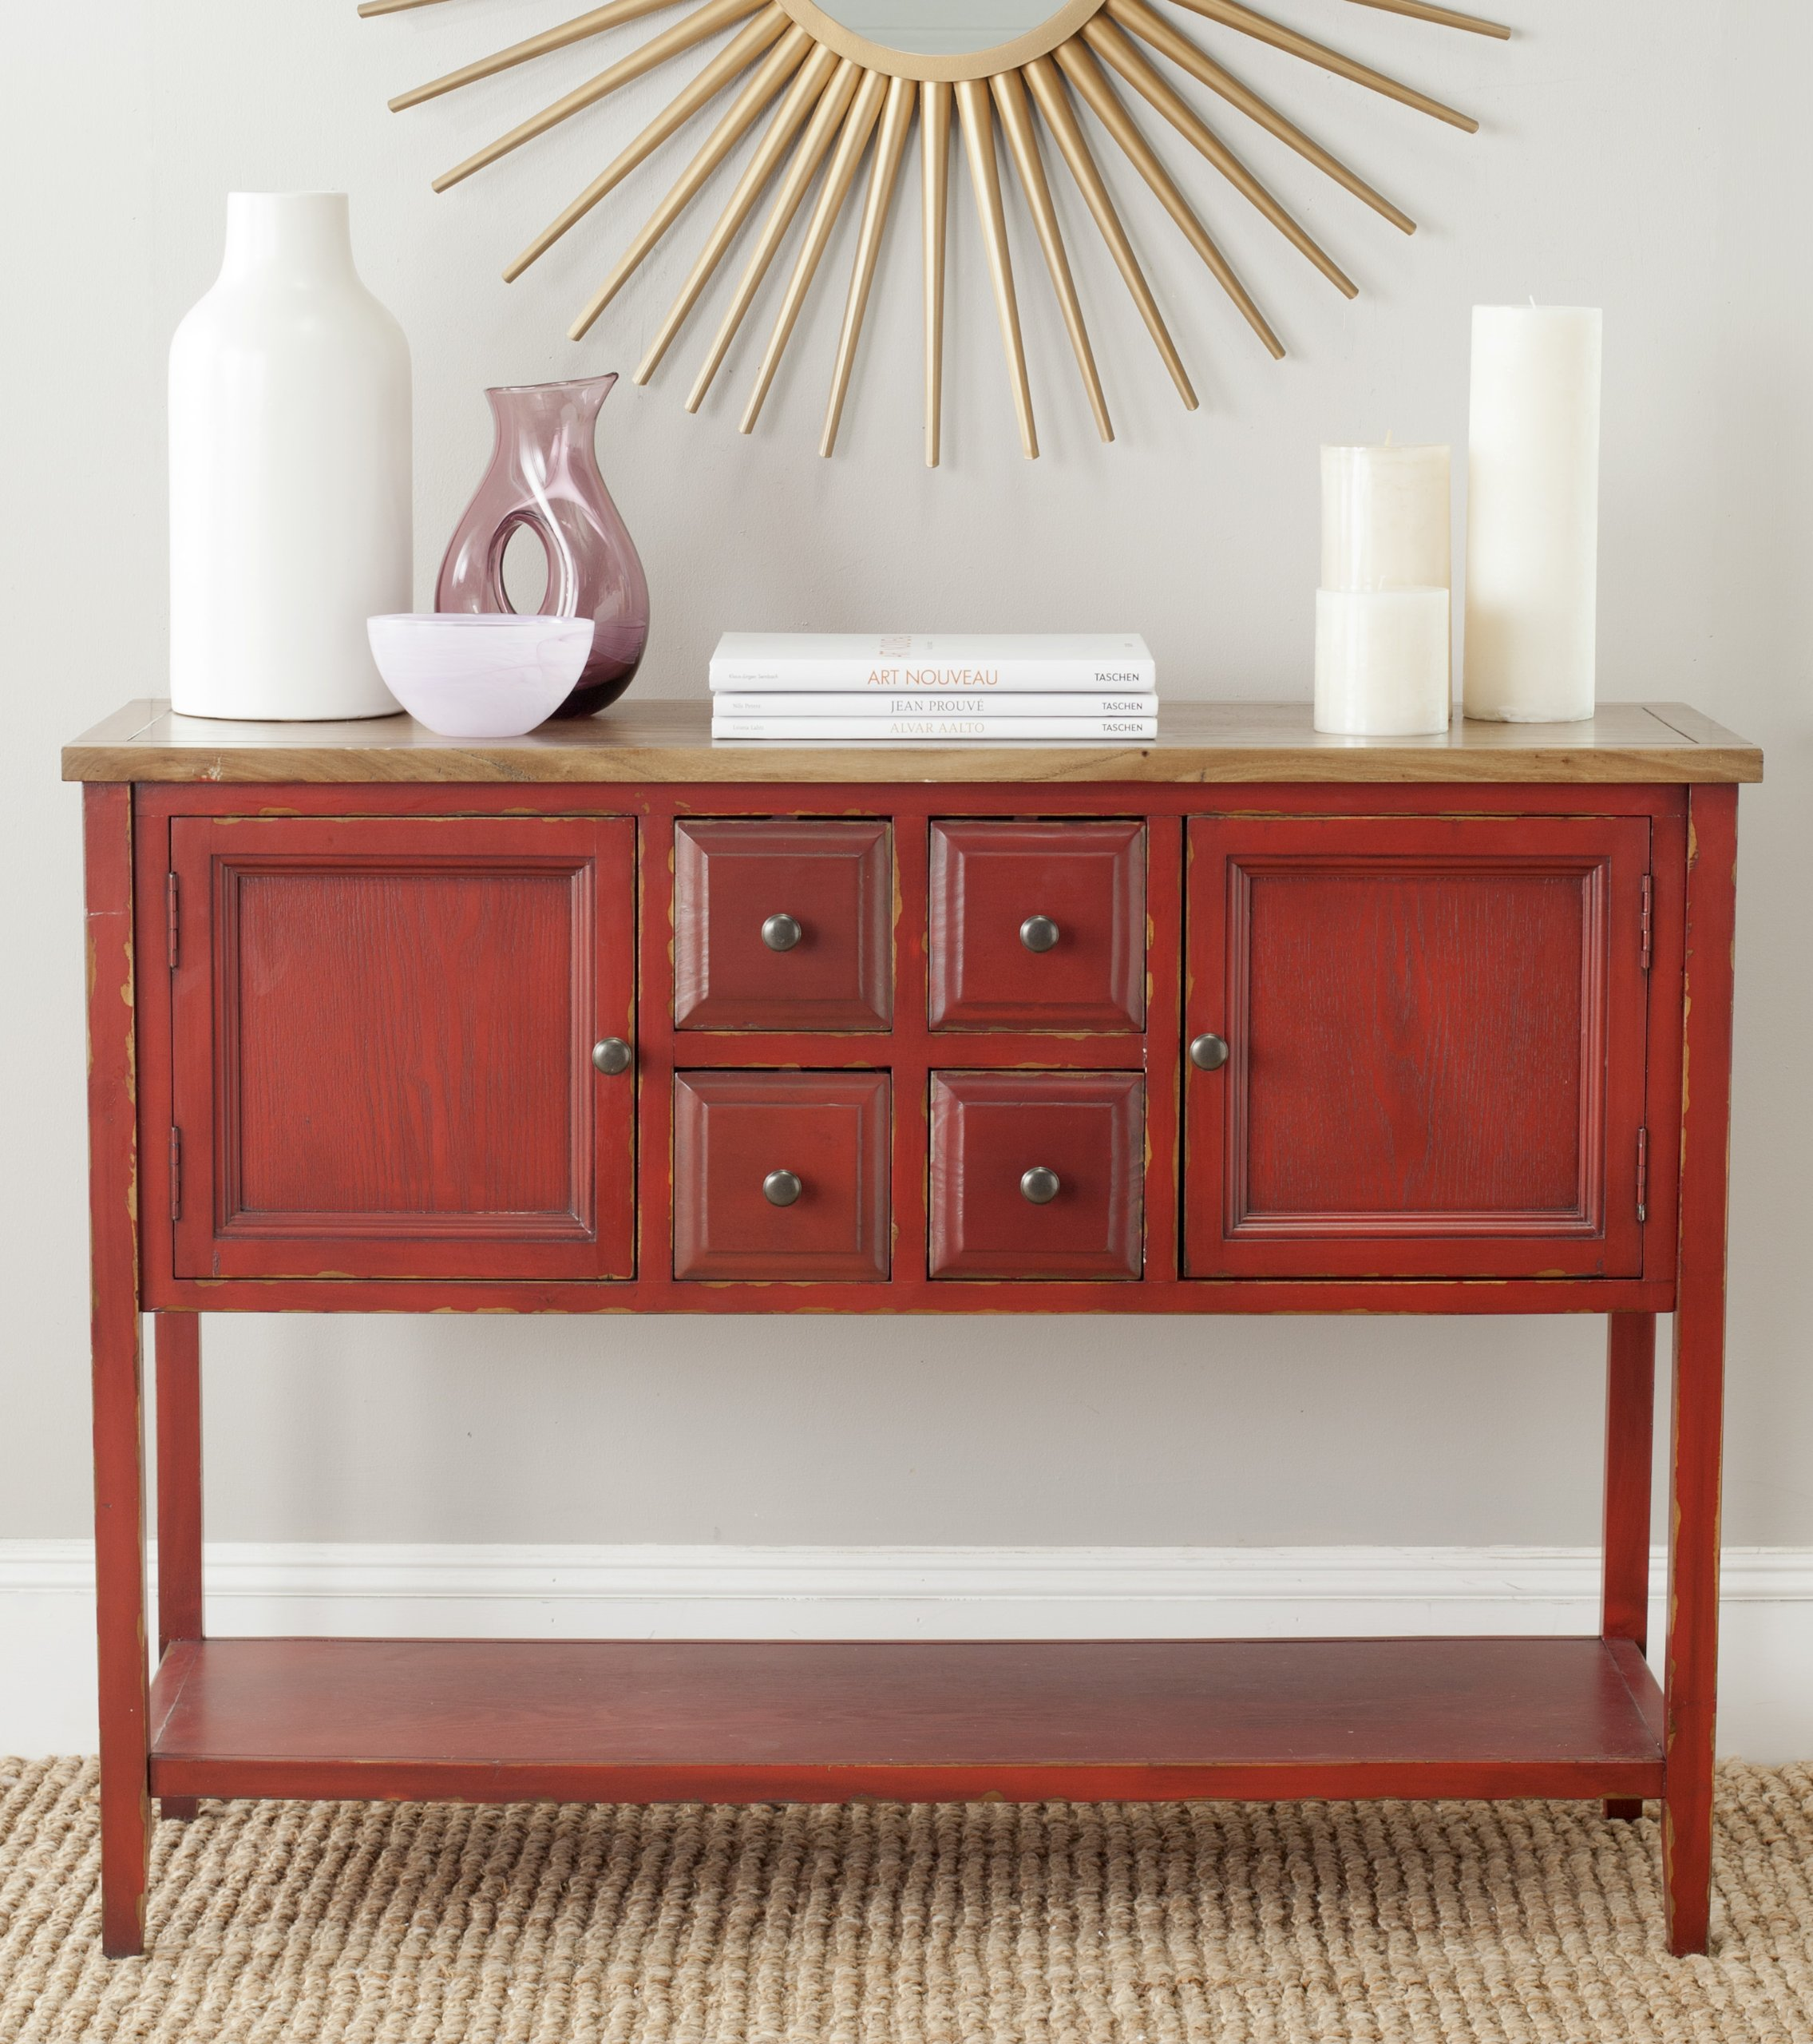 Safavieh American Homes Collection Charlotte Egyptian Red and Oak Sideboard by Safavieh